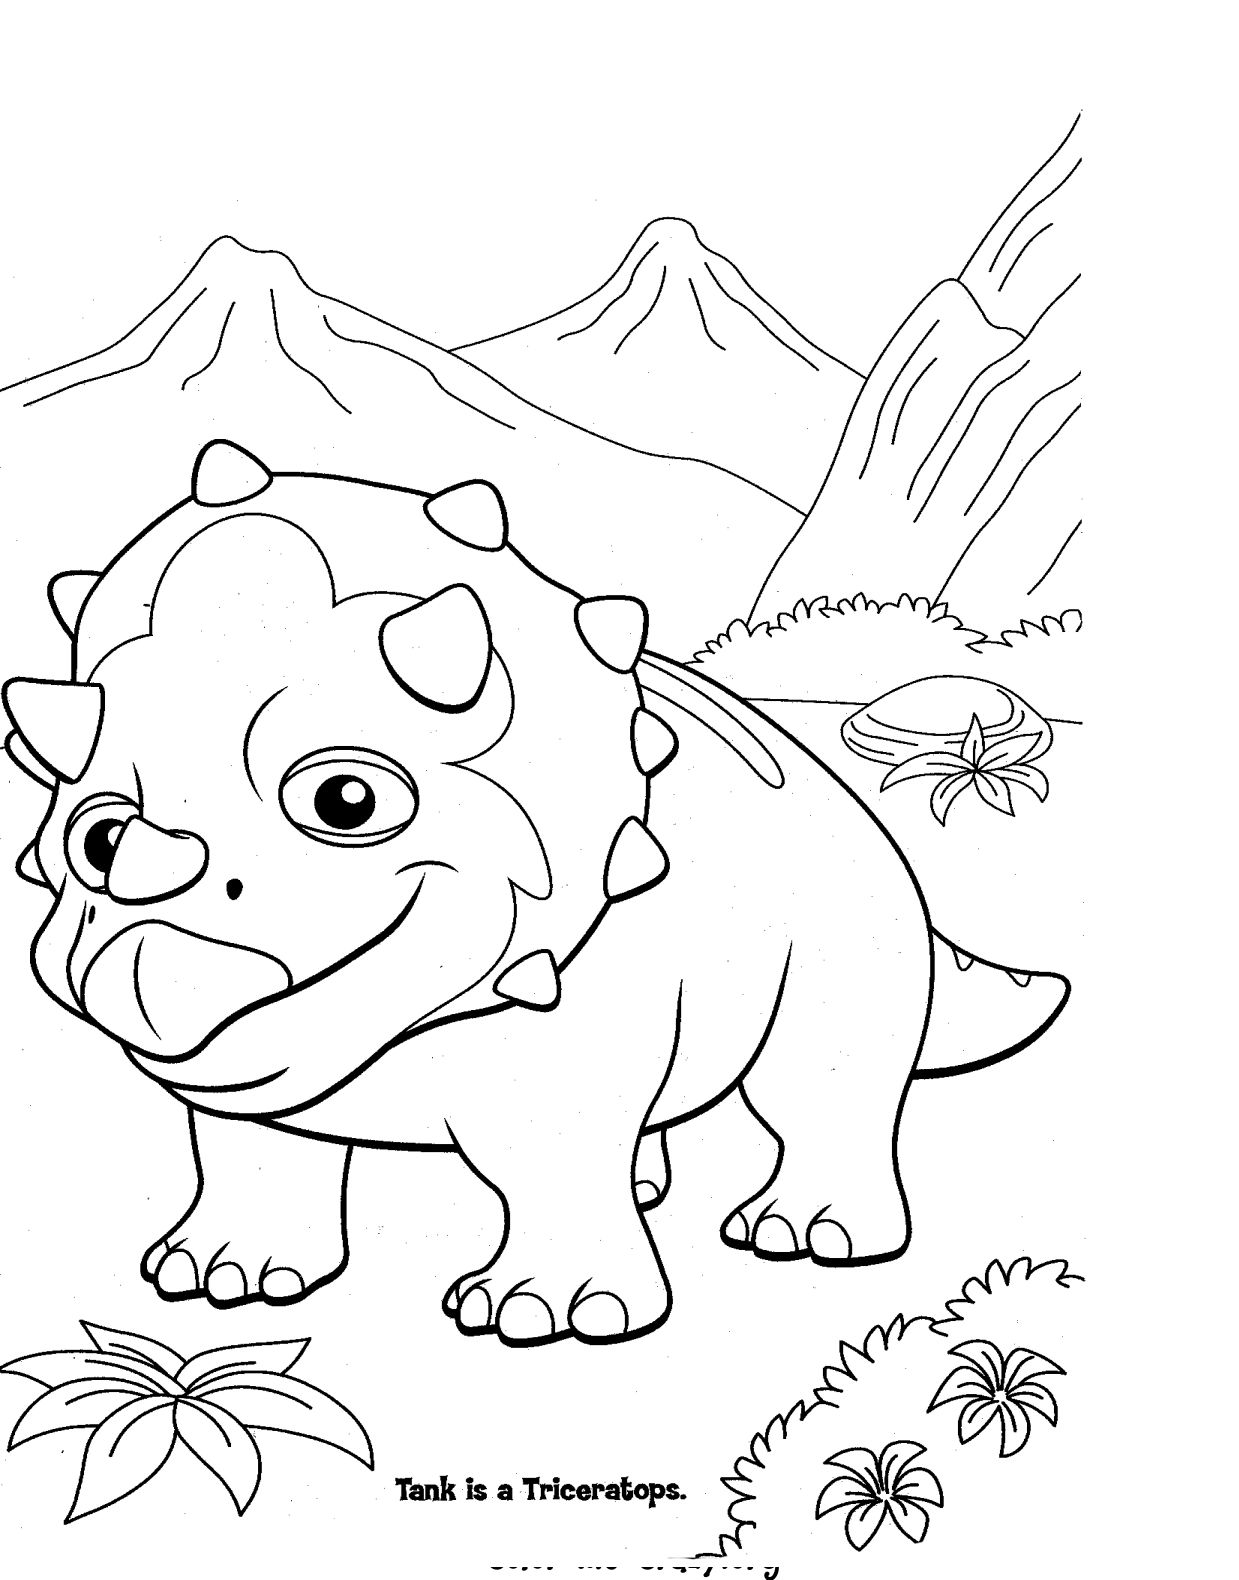 Wild image for free printable dinosaur coloring pages